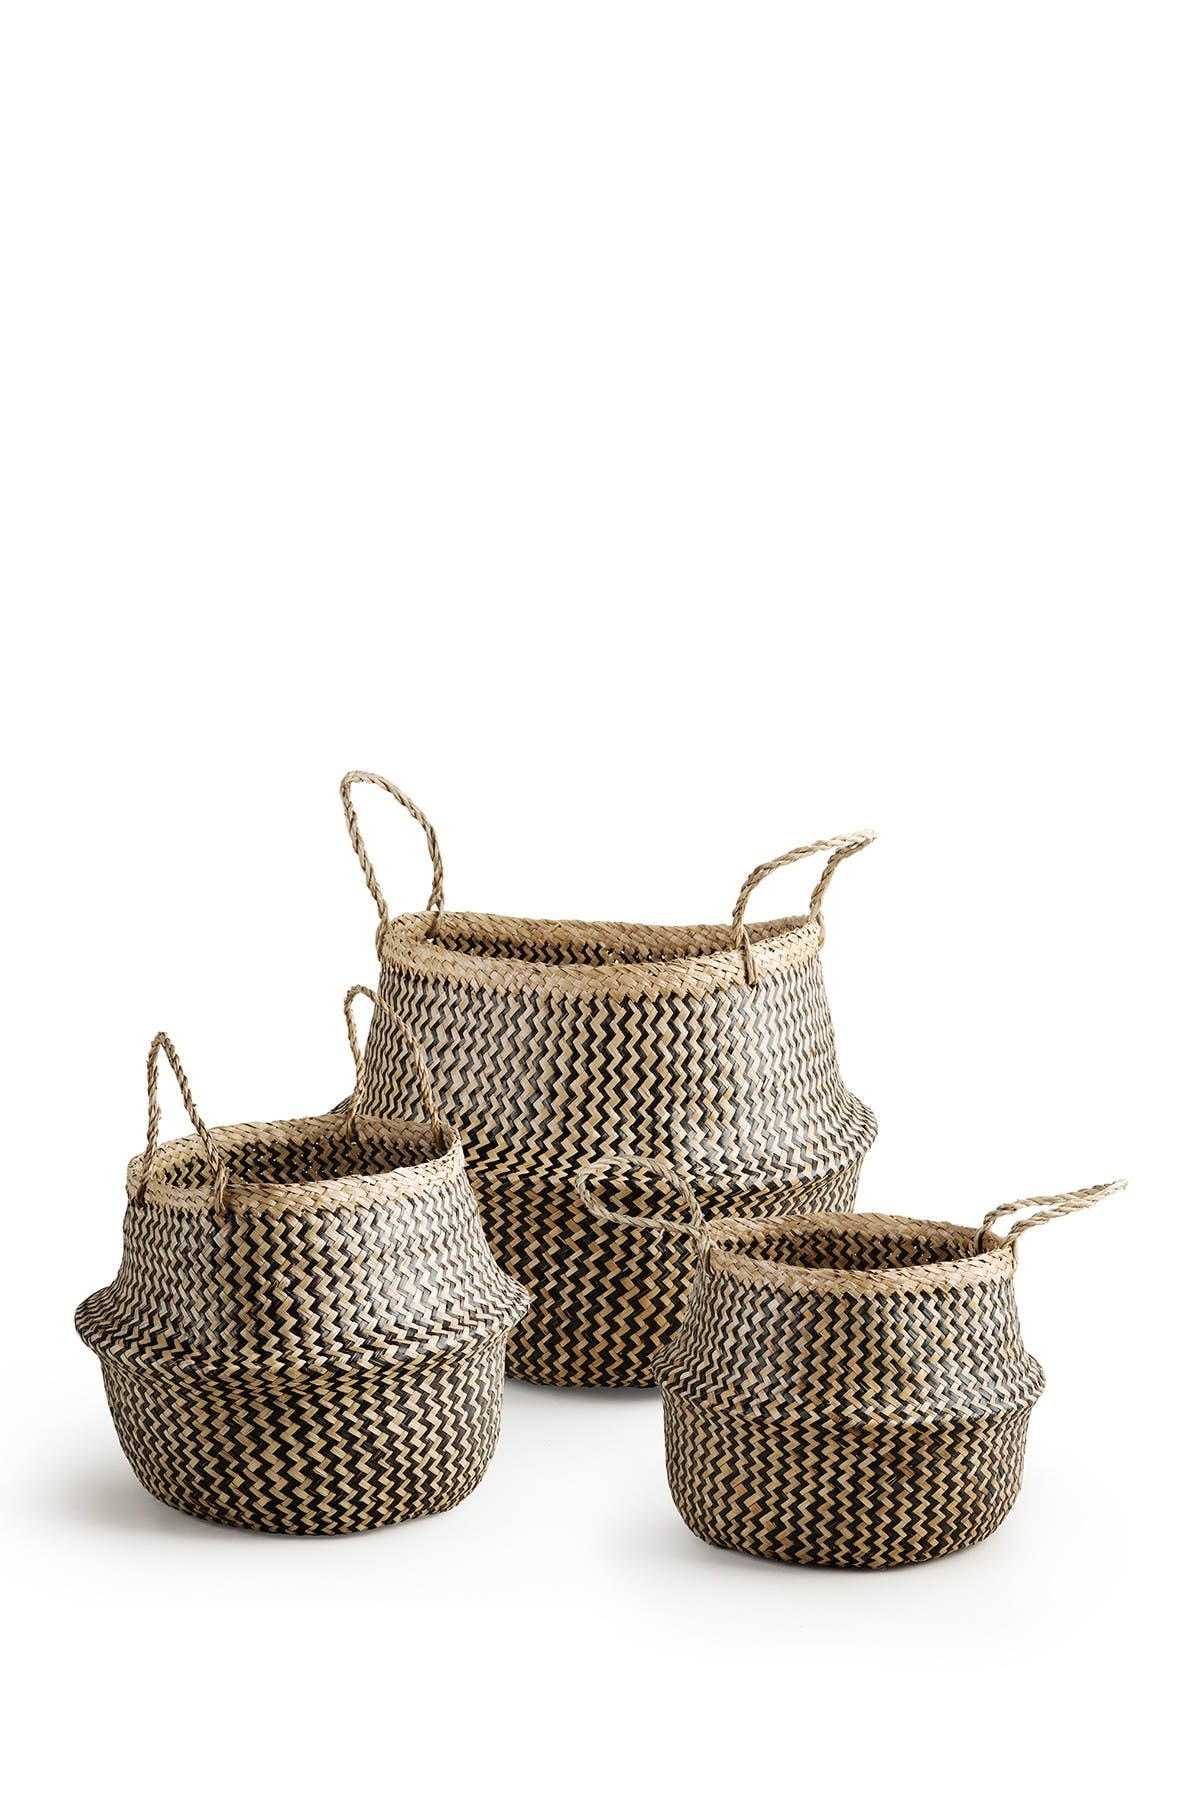 Image of Home Essentials and Beyond Seagrass Round Woven Handle Basket - Set of 3